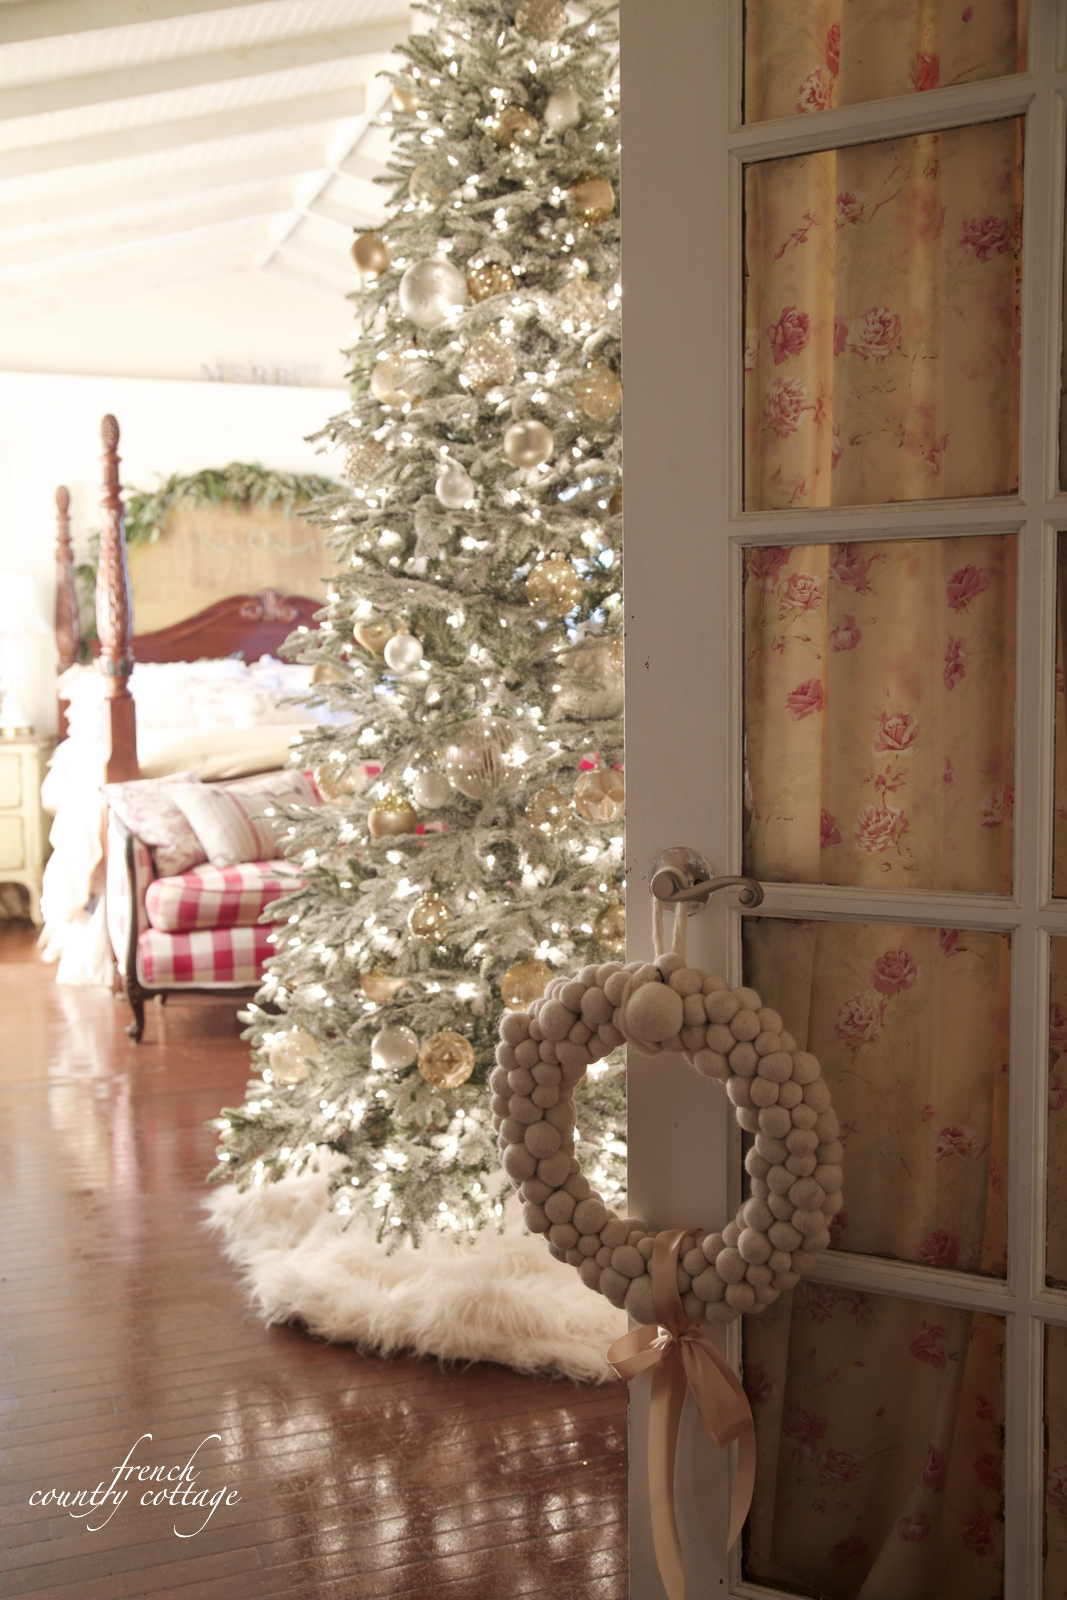 French Country Cottage Christmas Home Tour - FRENCH COUNTRY COTTAGE